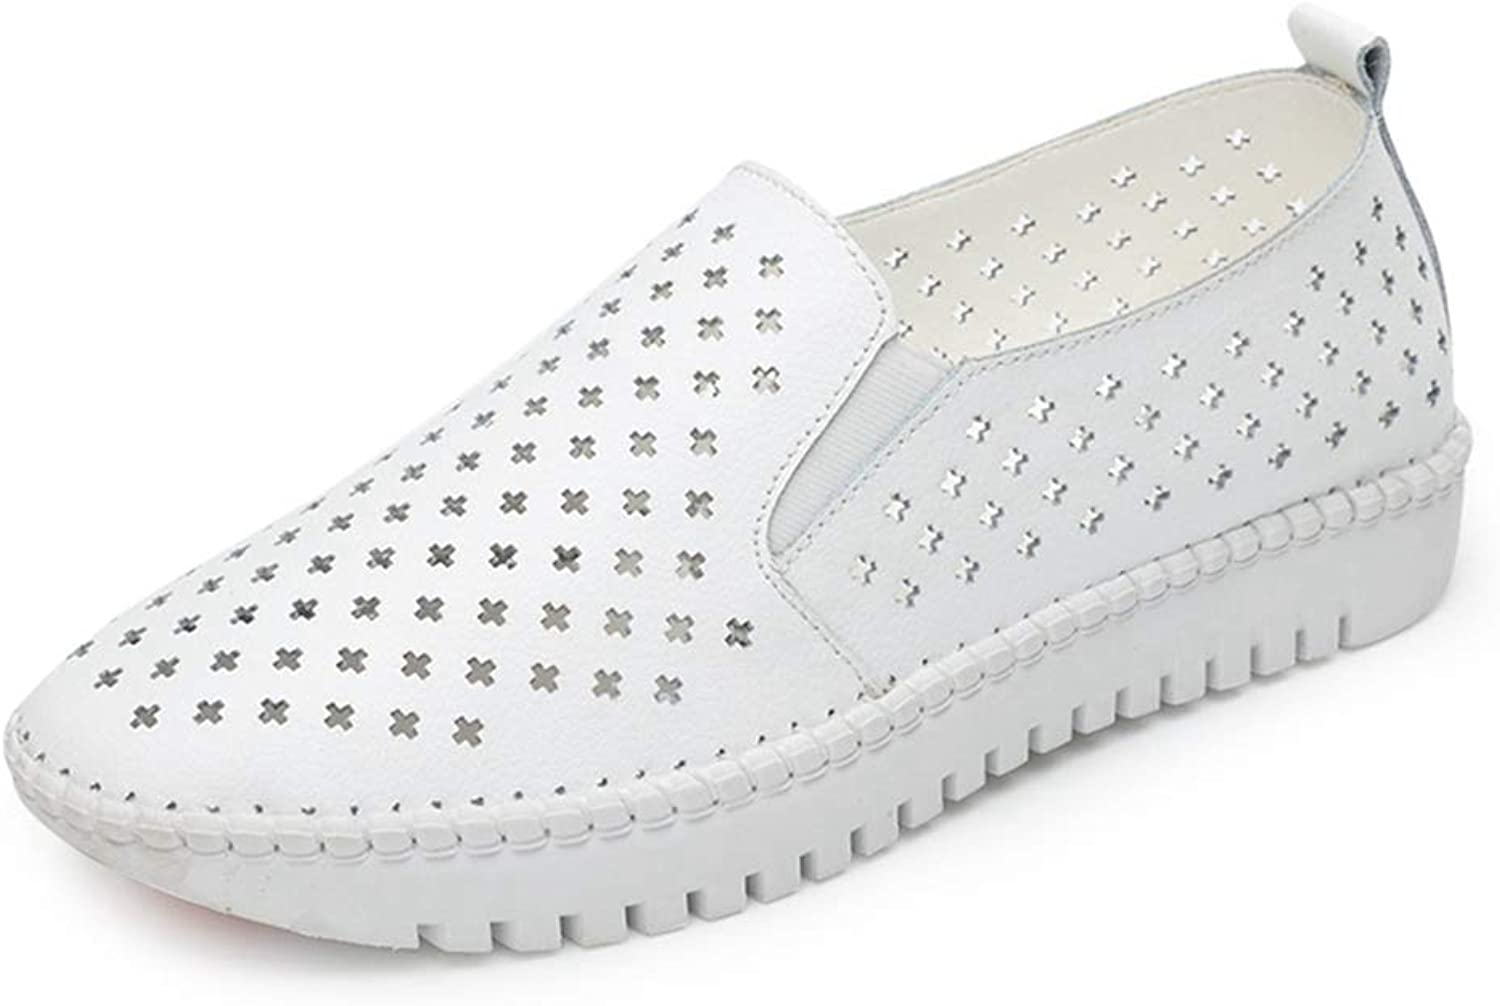 August Jim Women Flats shoes,Cut Out Genuine Leather Slip on Sneakers shoes